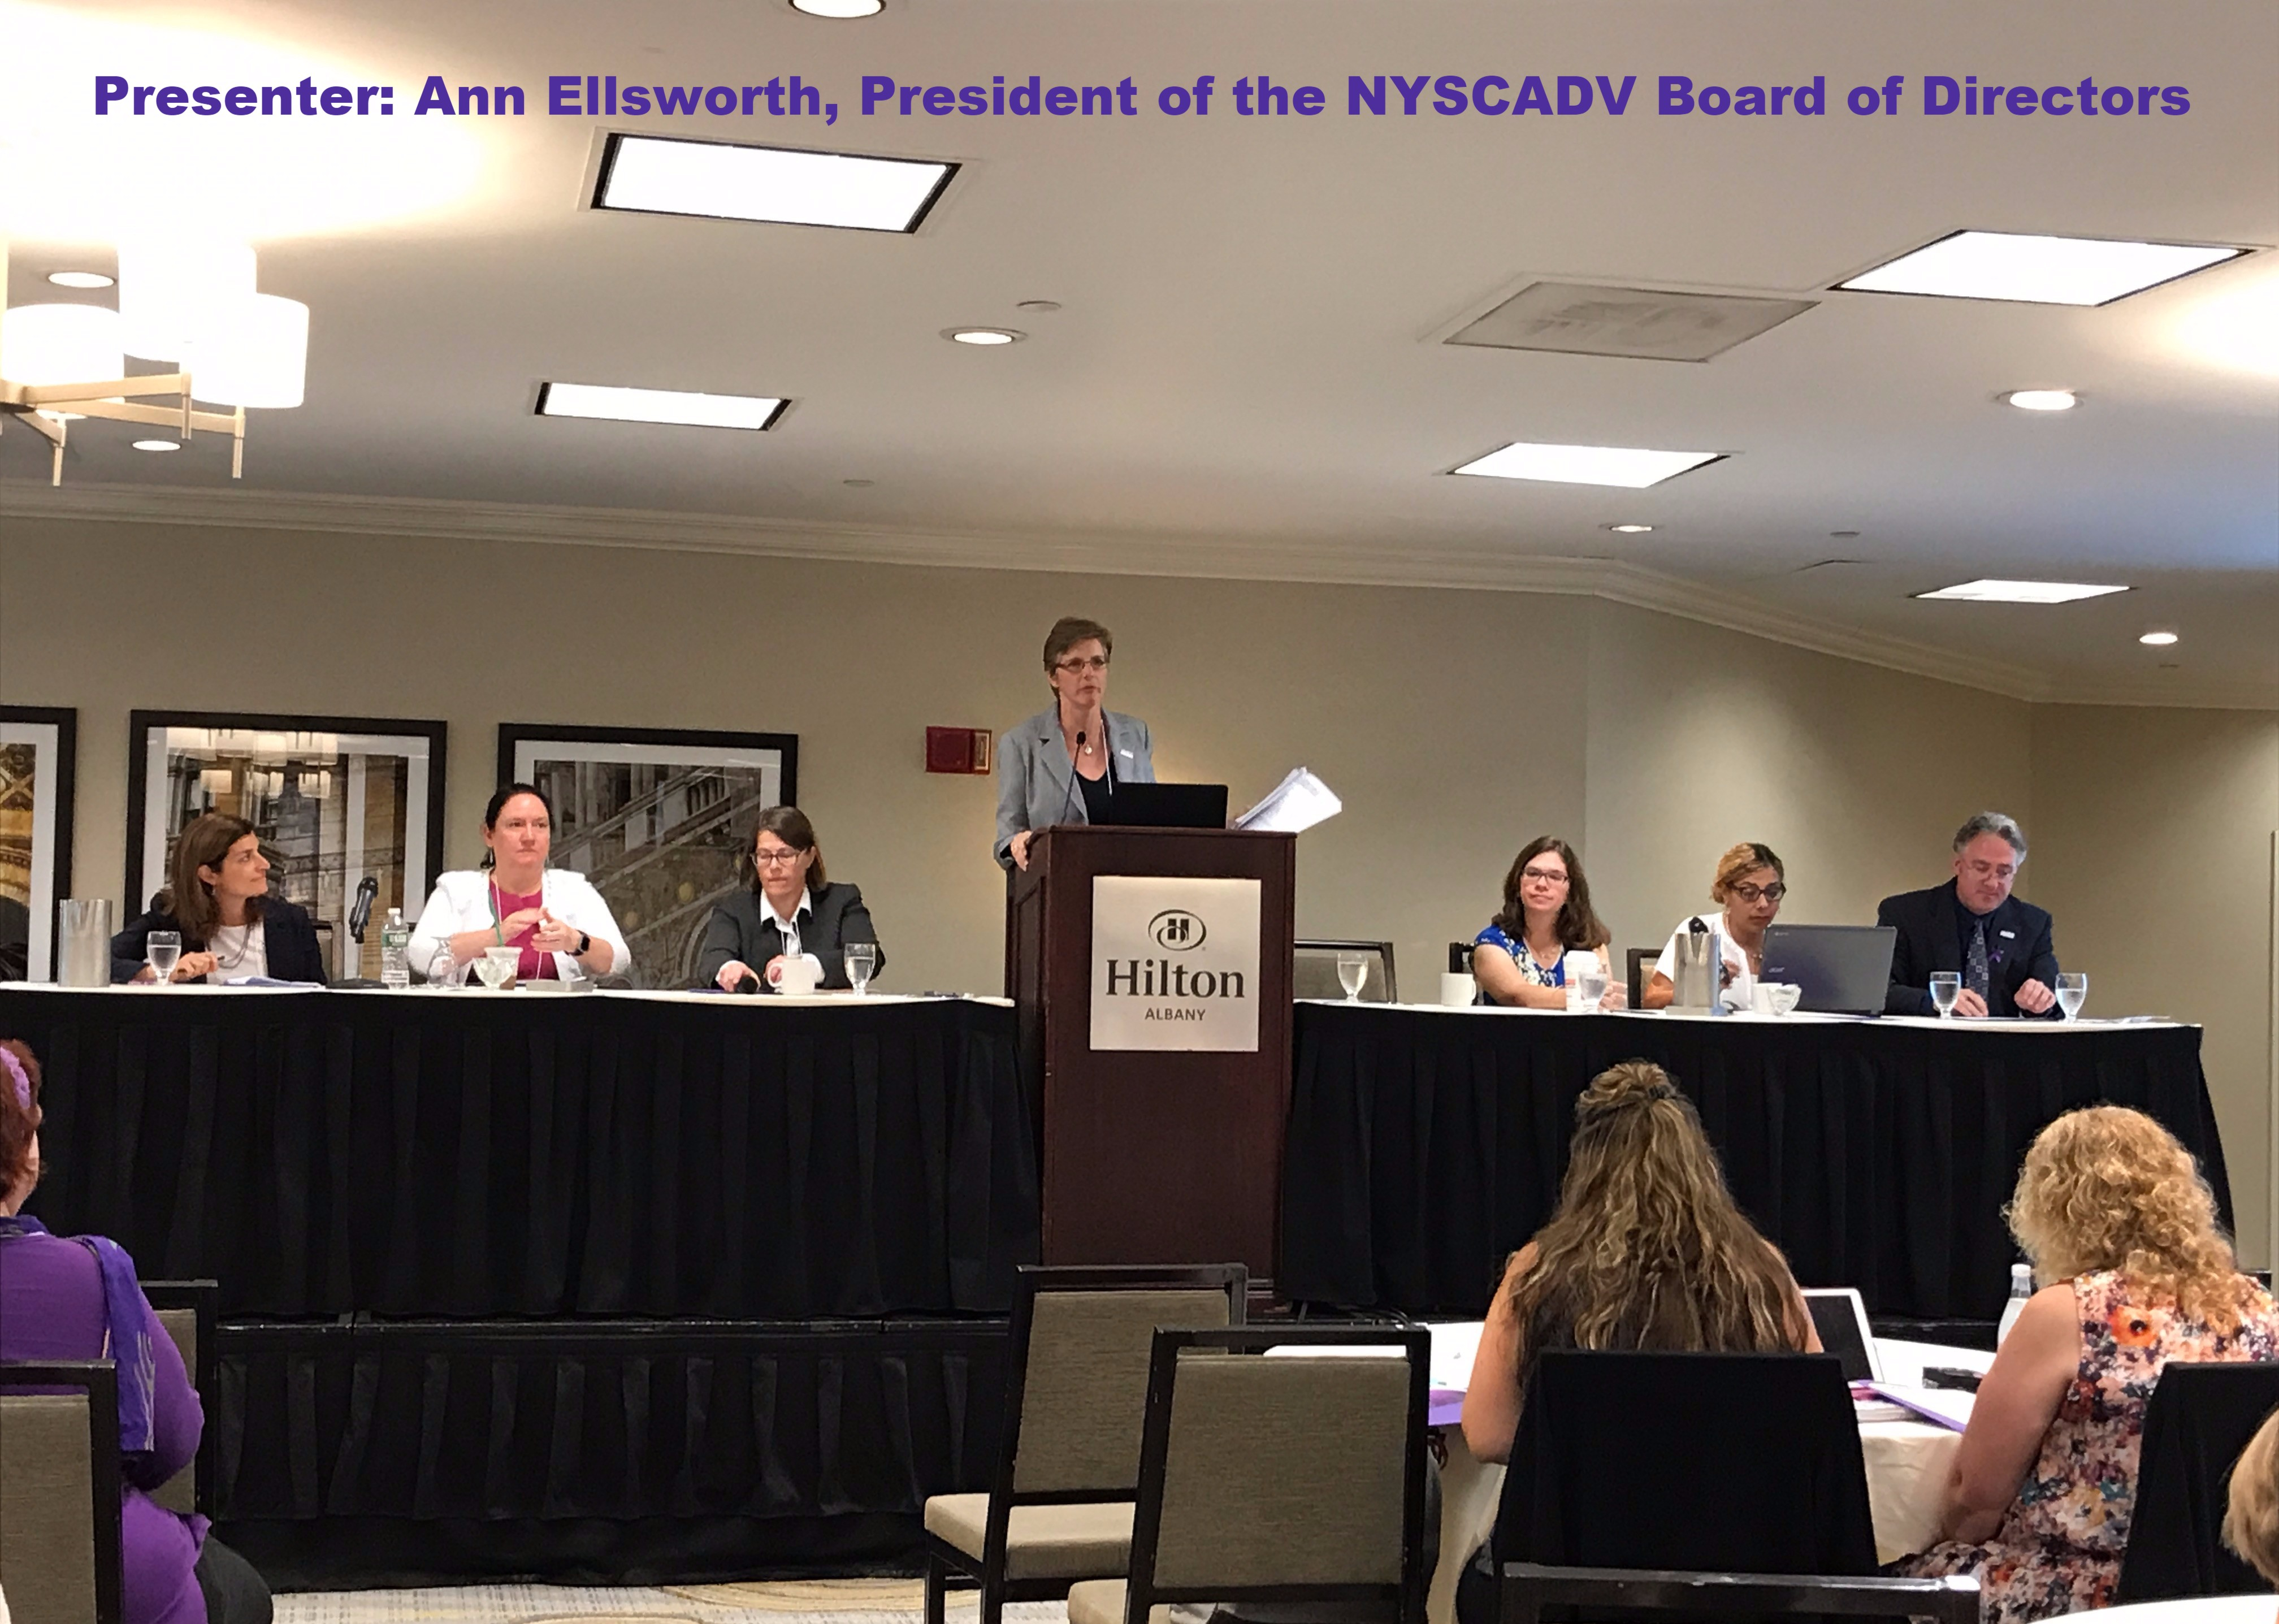 Recap of the 2017 NYSCADV Annual Meeting